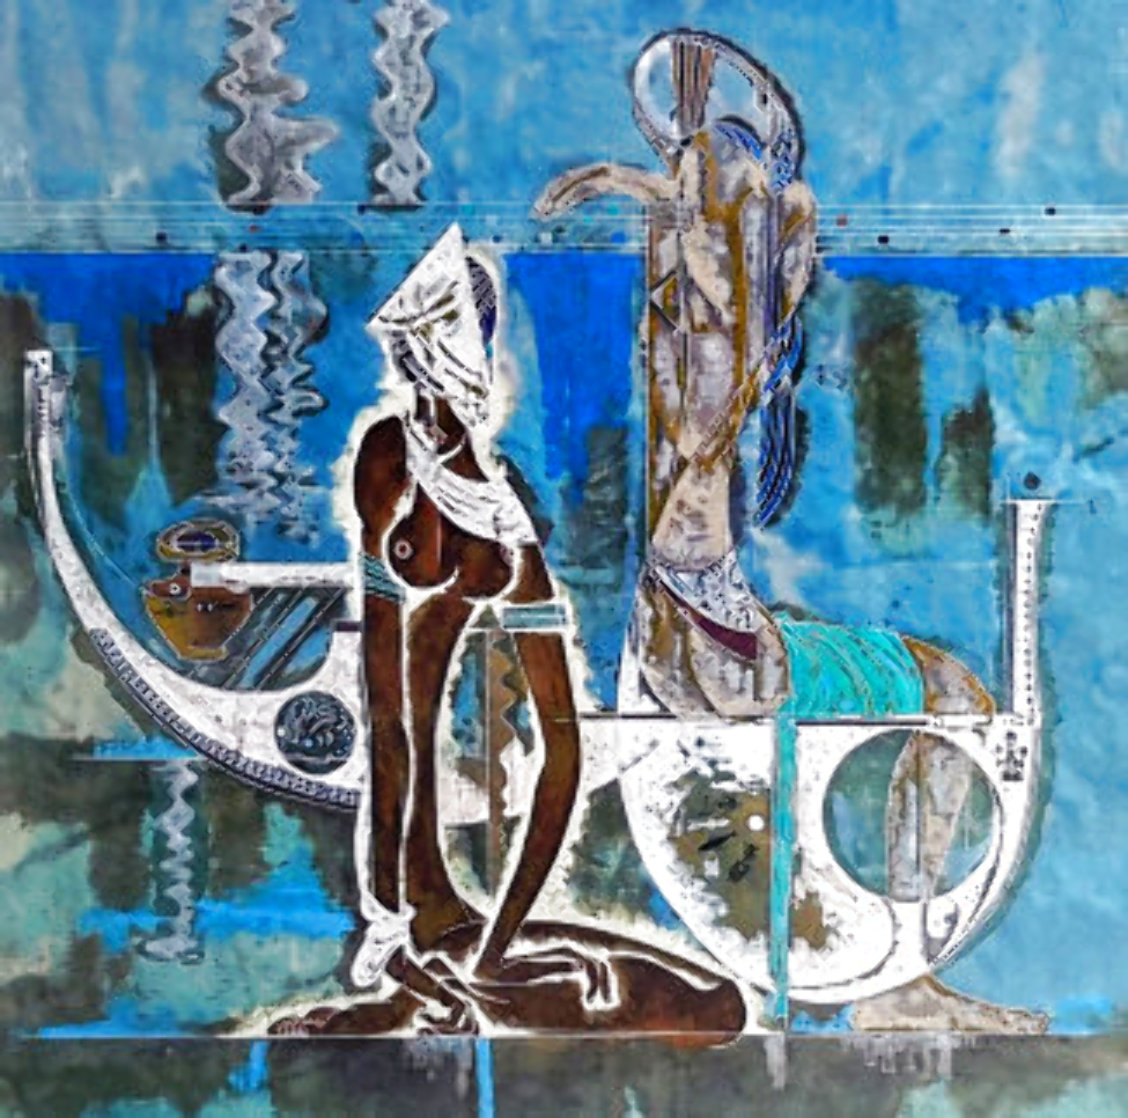 Rhyme of the Sea 1988 34x38 Super Huge Limited Edition Print by Lu Hong